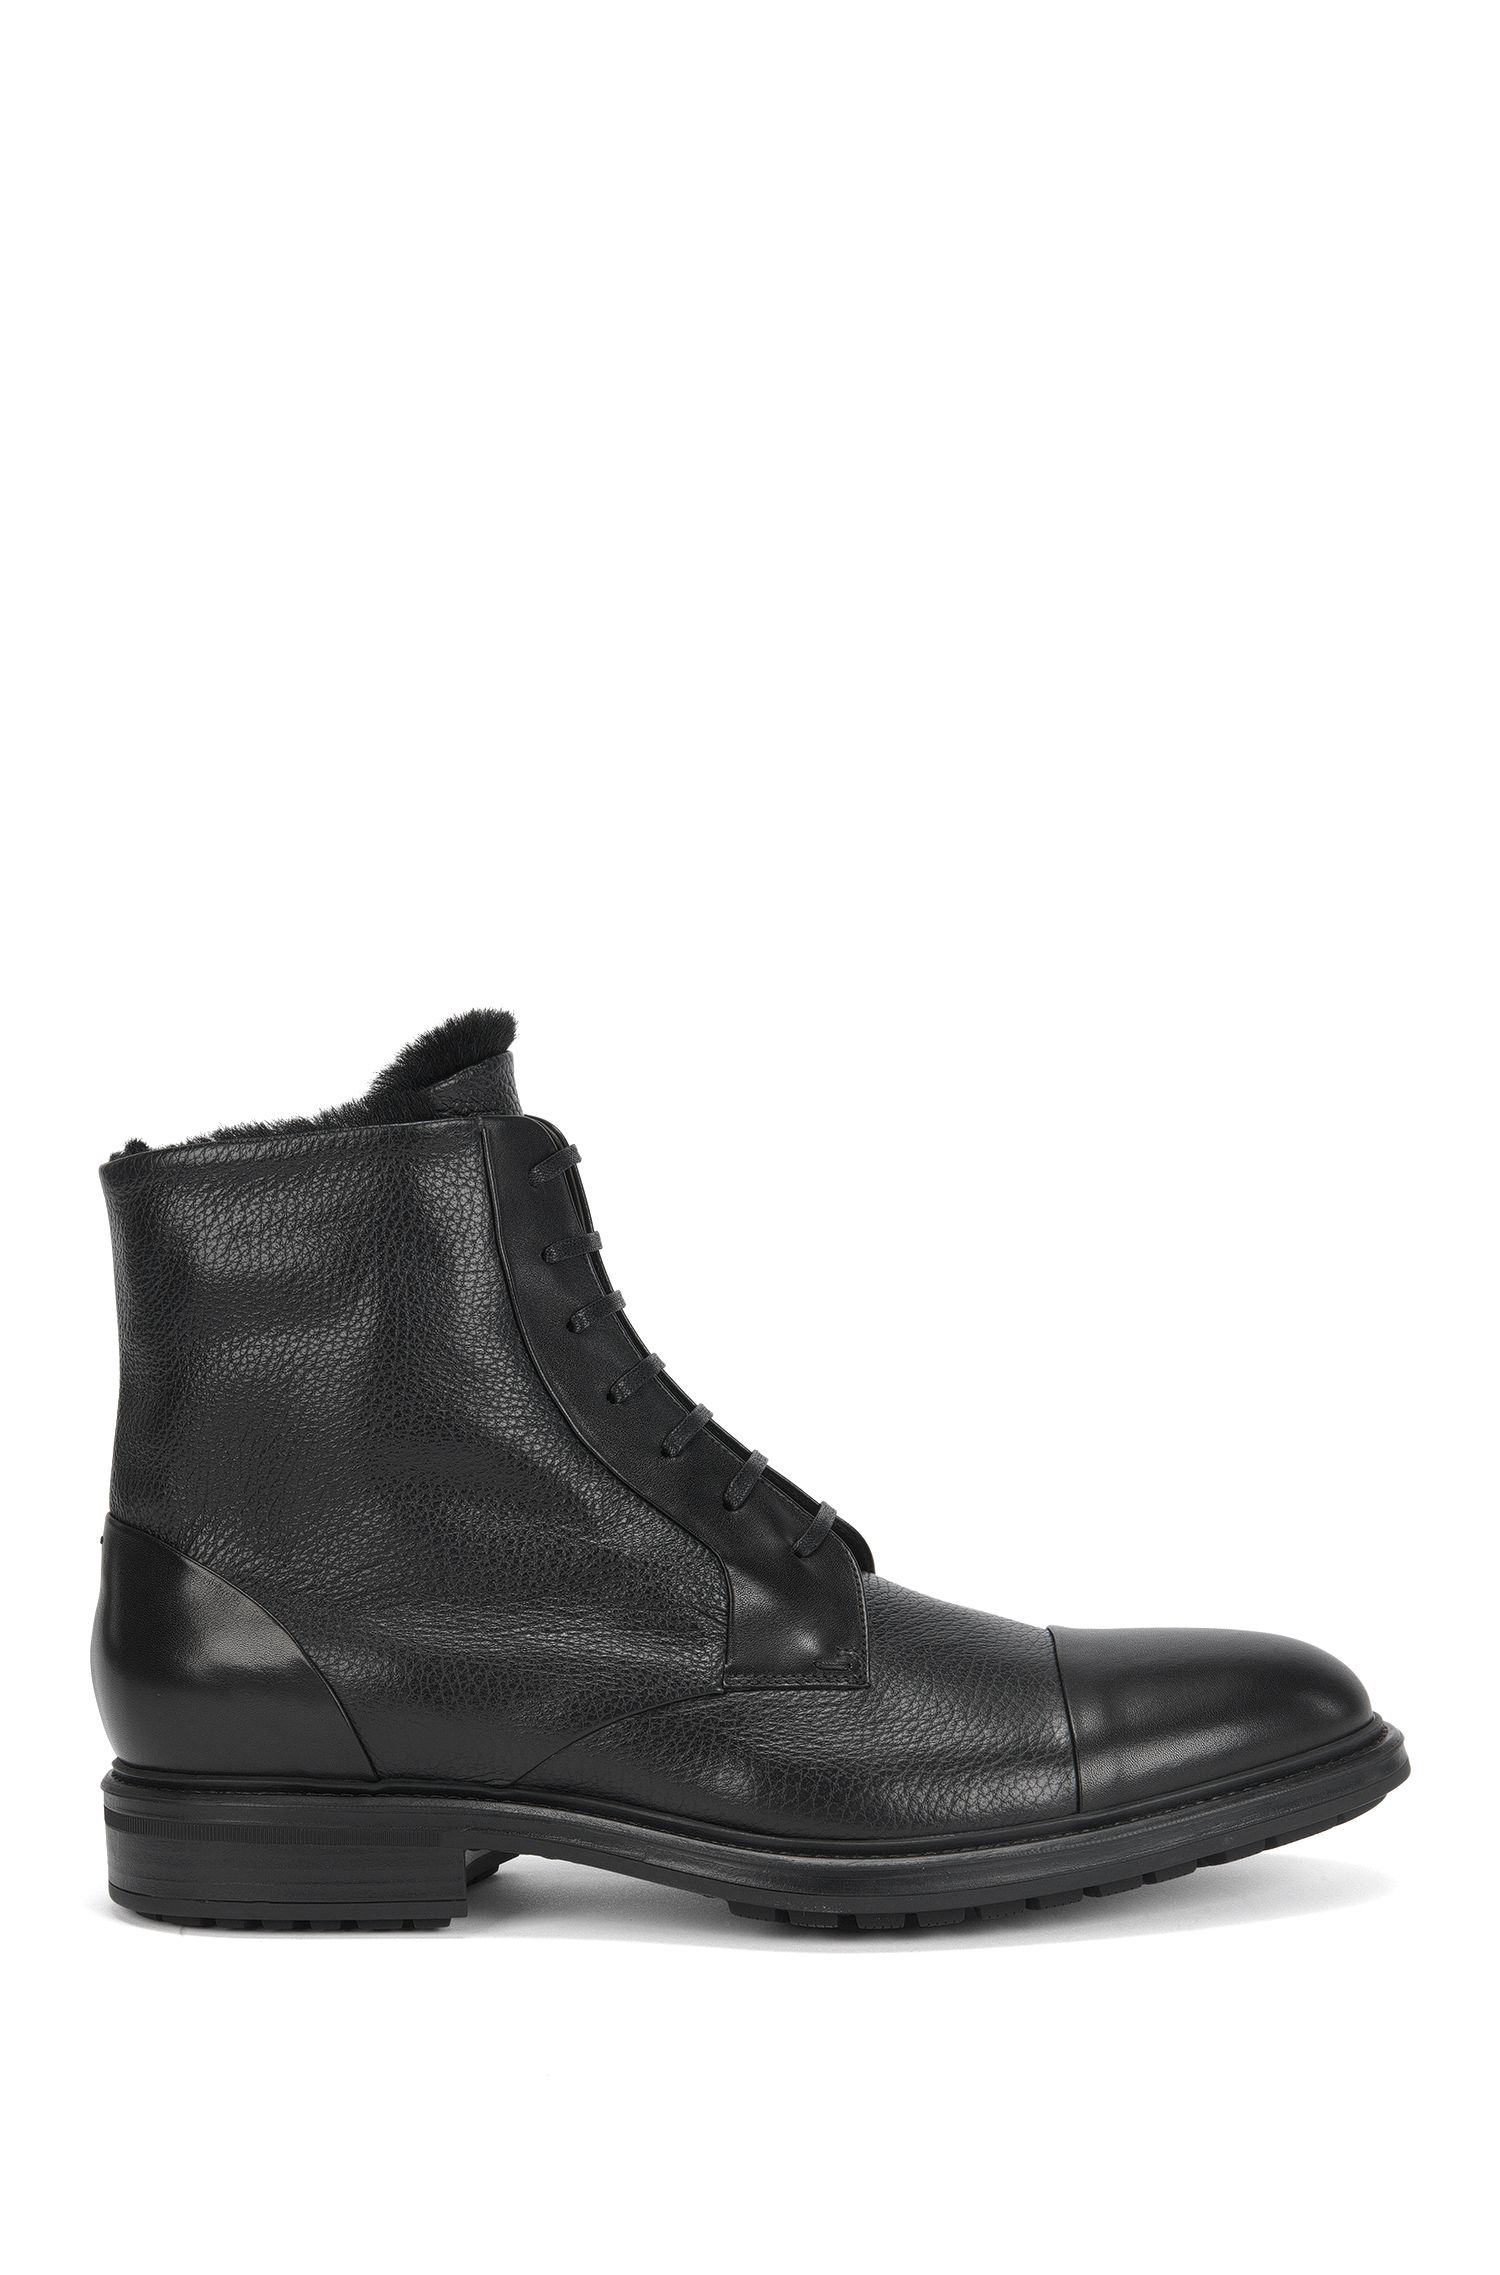 Leather Boot | Warsaw Halb Plgrct